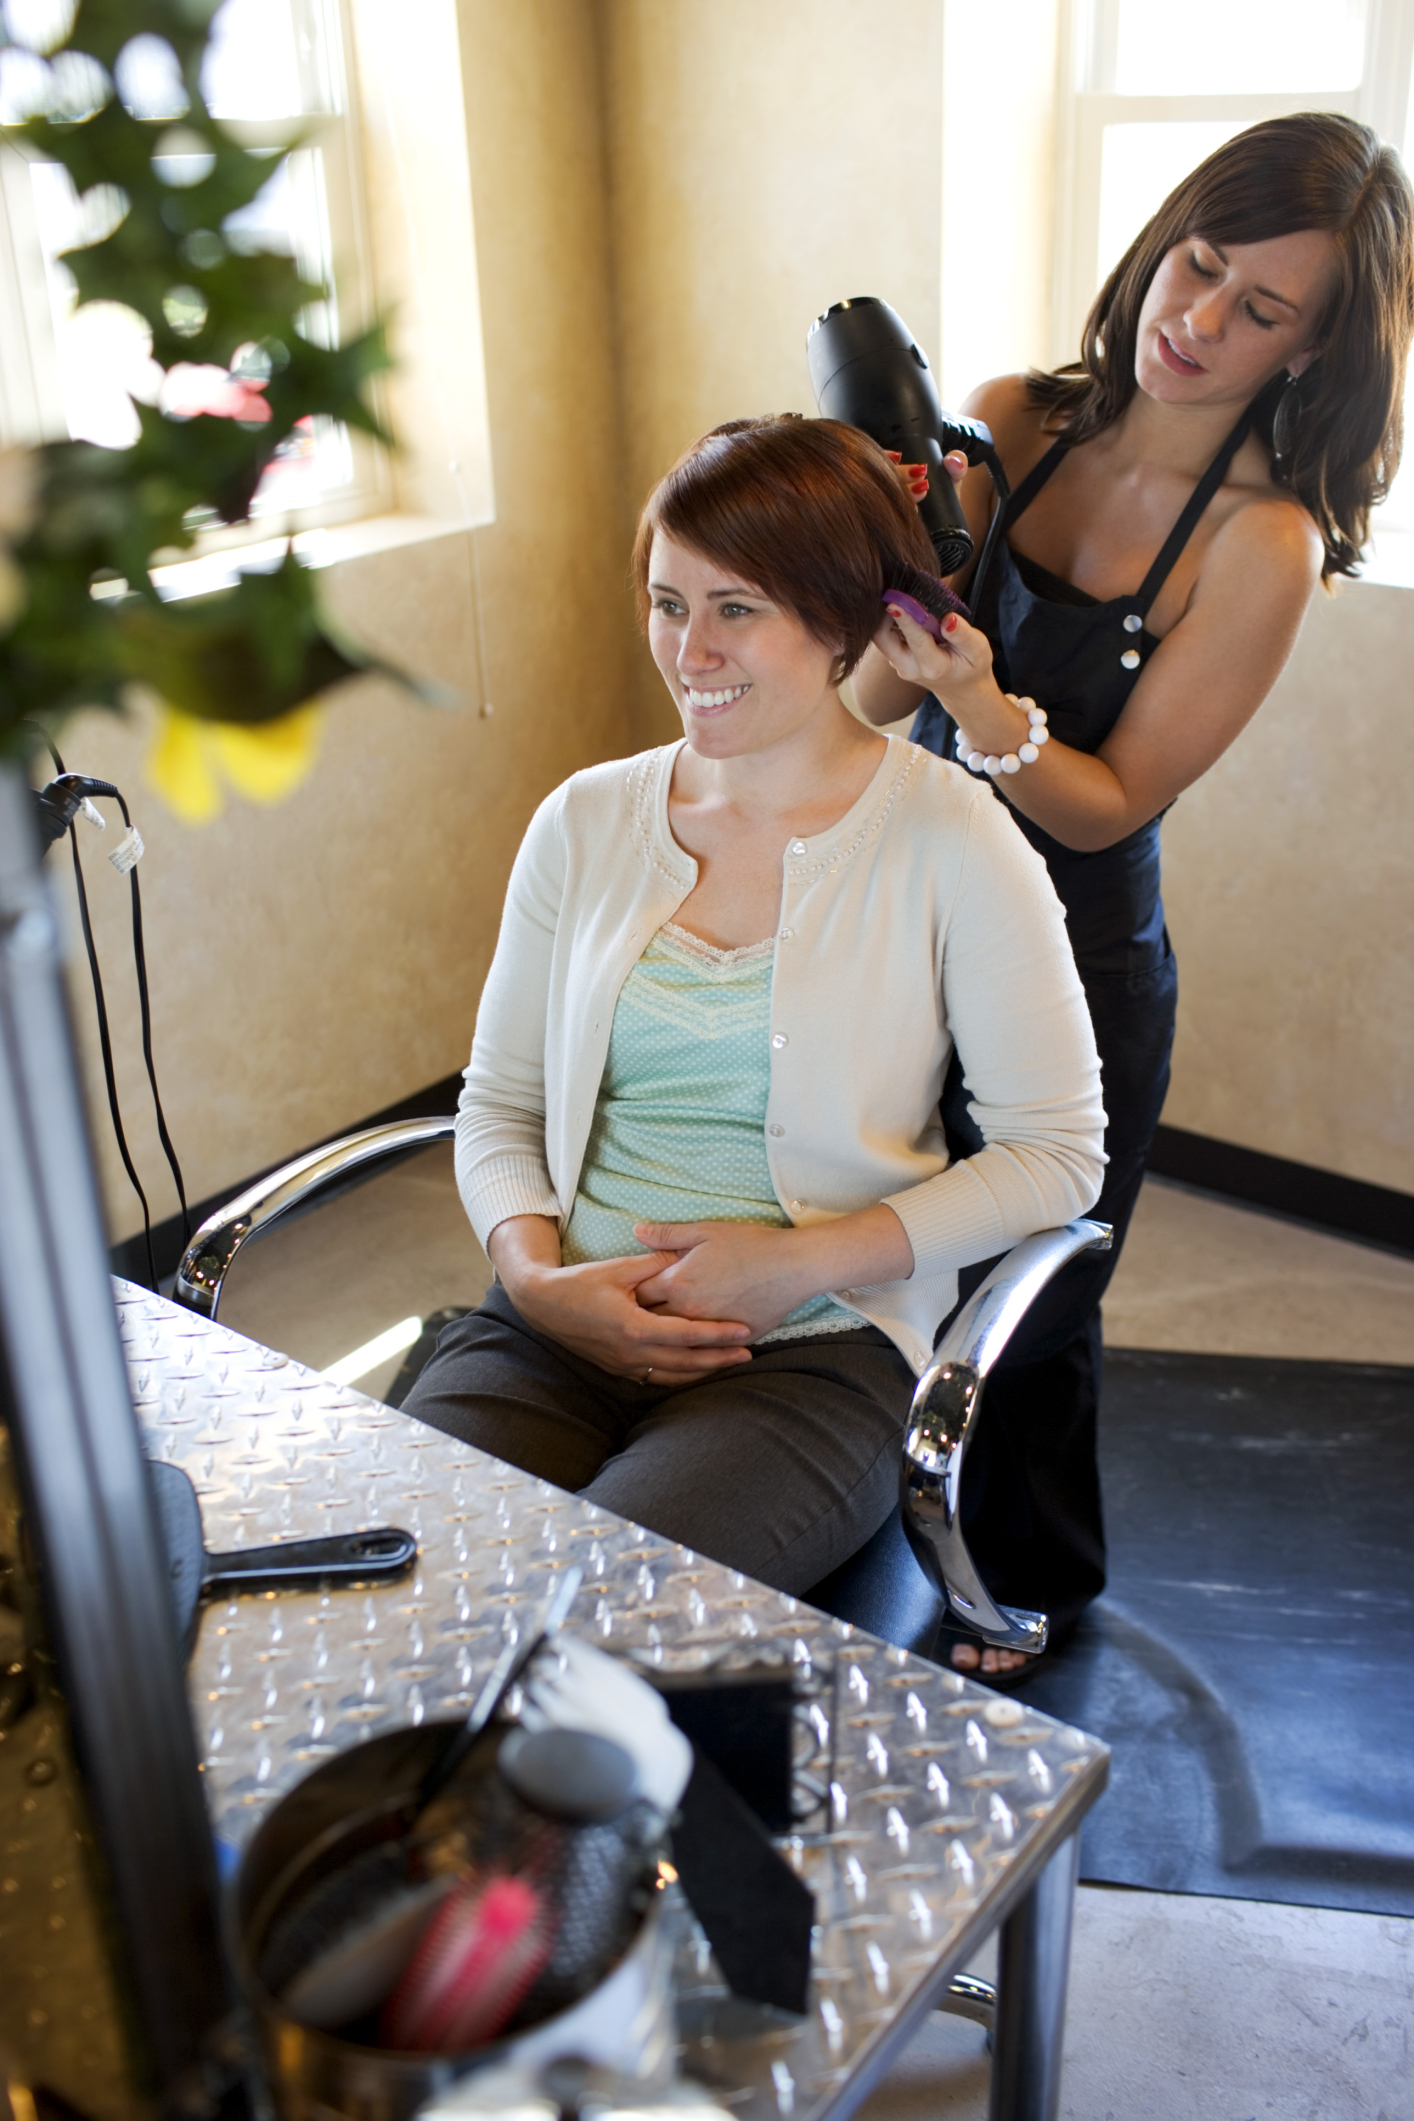 Strengths Amp Skills Of A Cosmetologist